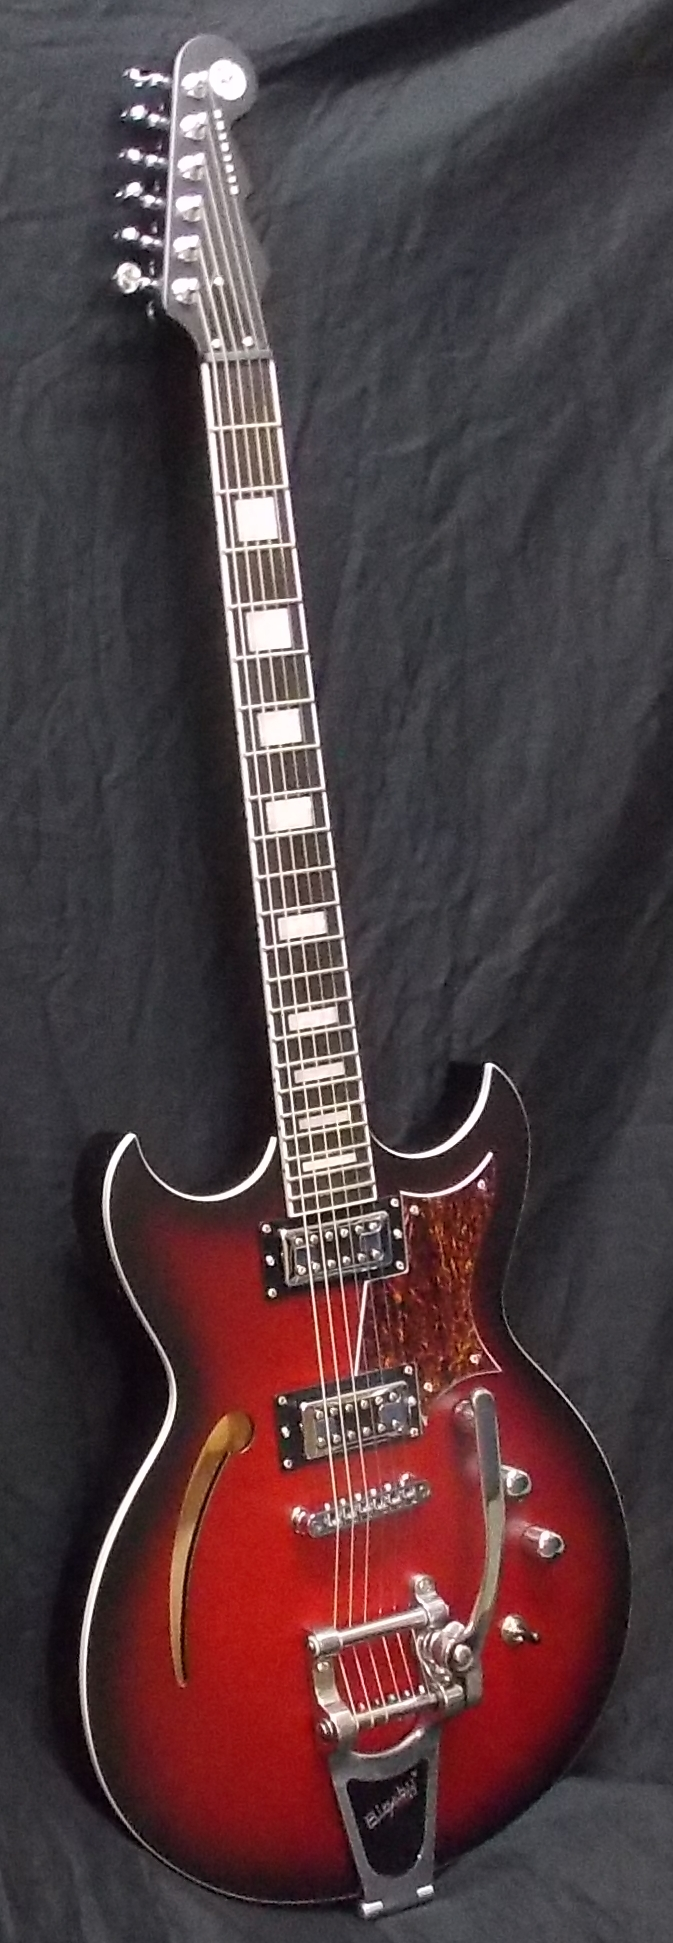 Tricky Gomez. The humor behind the name is lost on those not old enough to remember Trini Lopez or otherwise be aware of his Gibson signature model guitar. $1,099.00